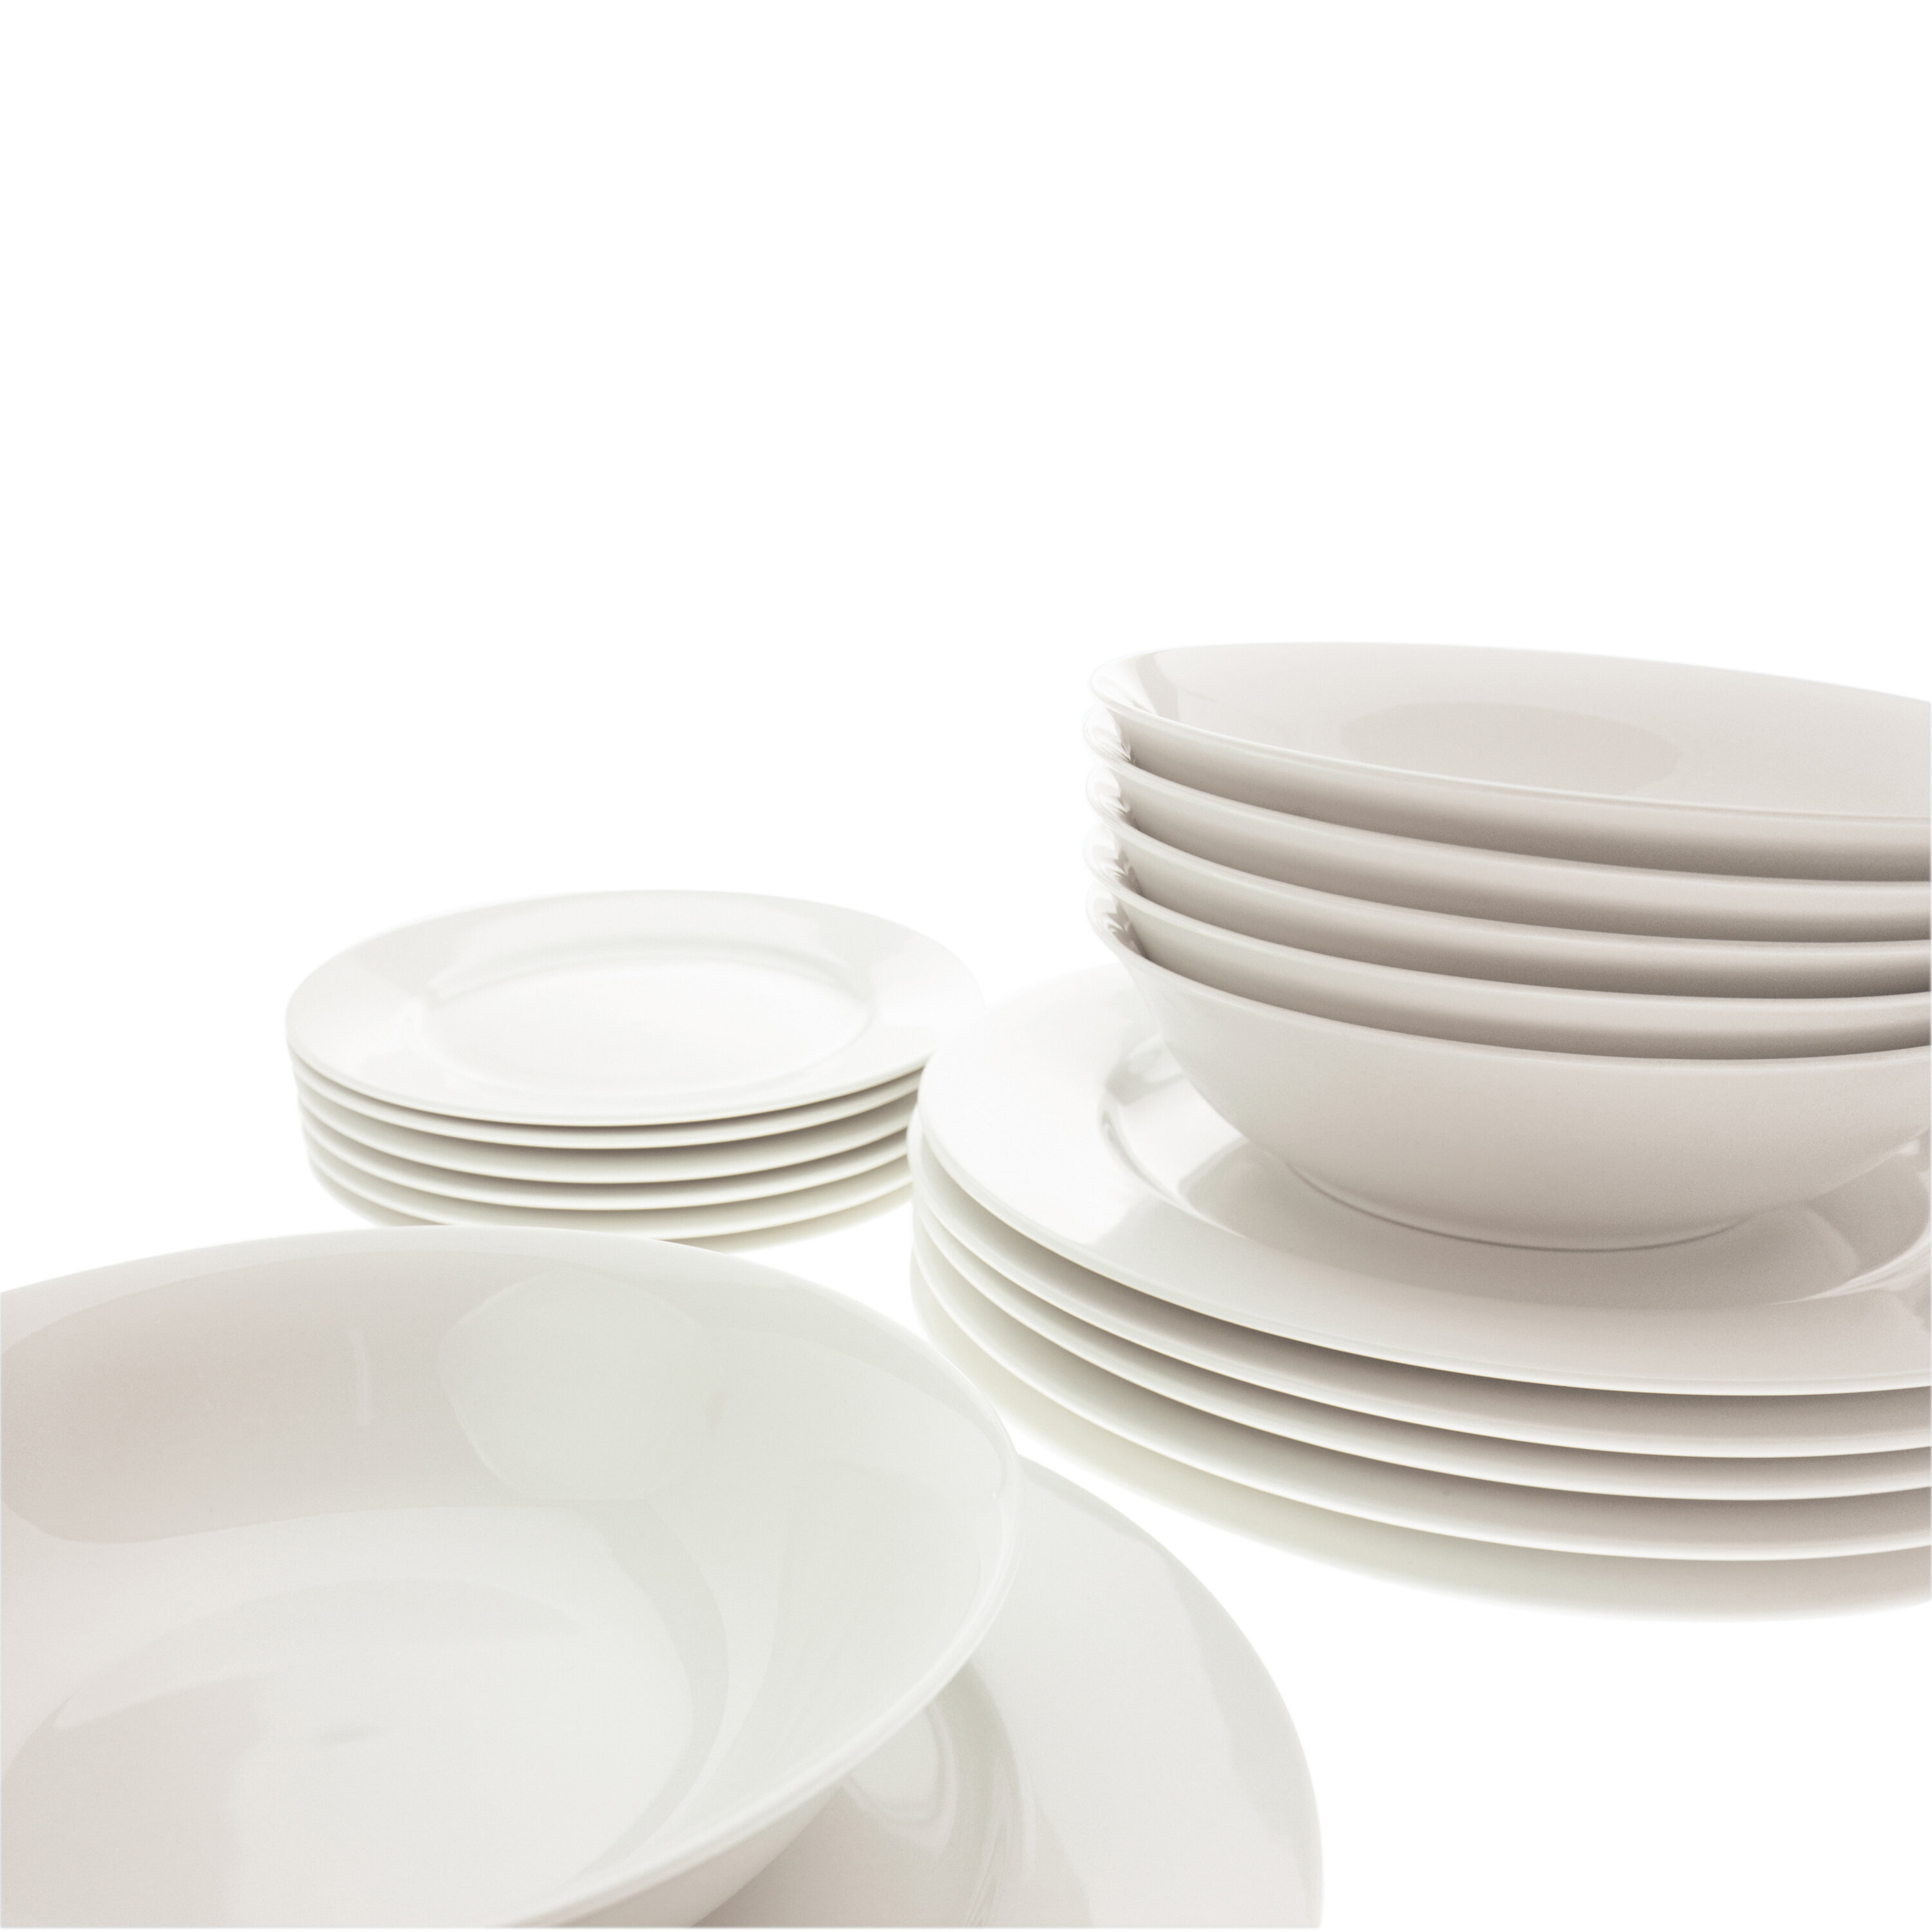 Maxwell u0026 Williams White Basics European 18 Piece Dinnerware Set Service for 6 u0026 Reviews | Wayfair  sc 1 st  Wayfair : european tableware - pezcame.com